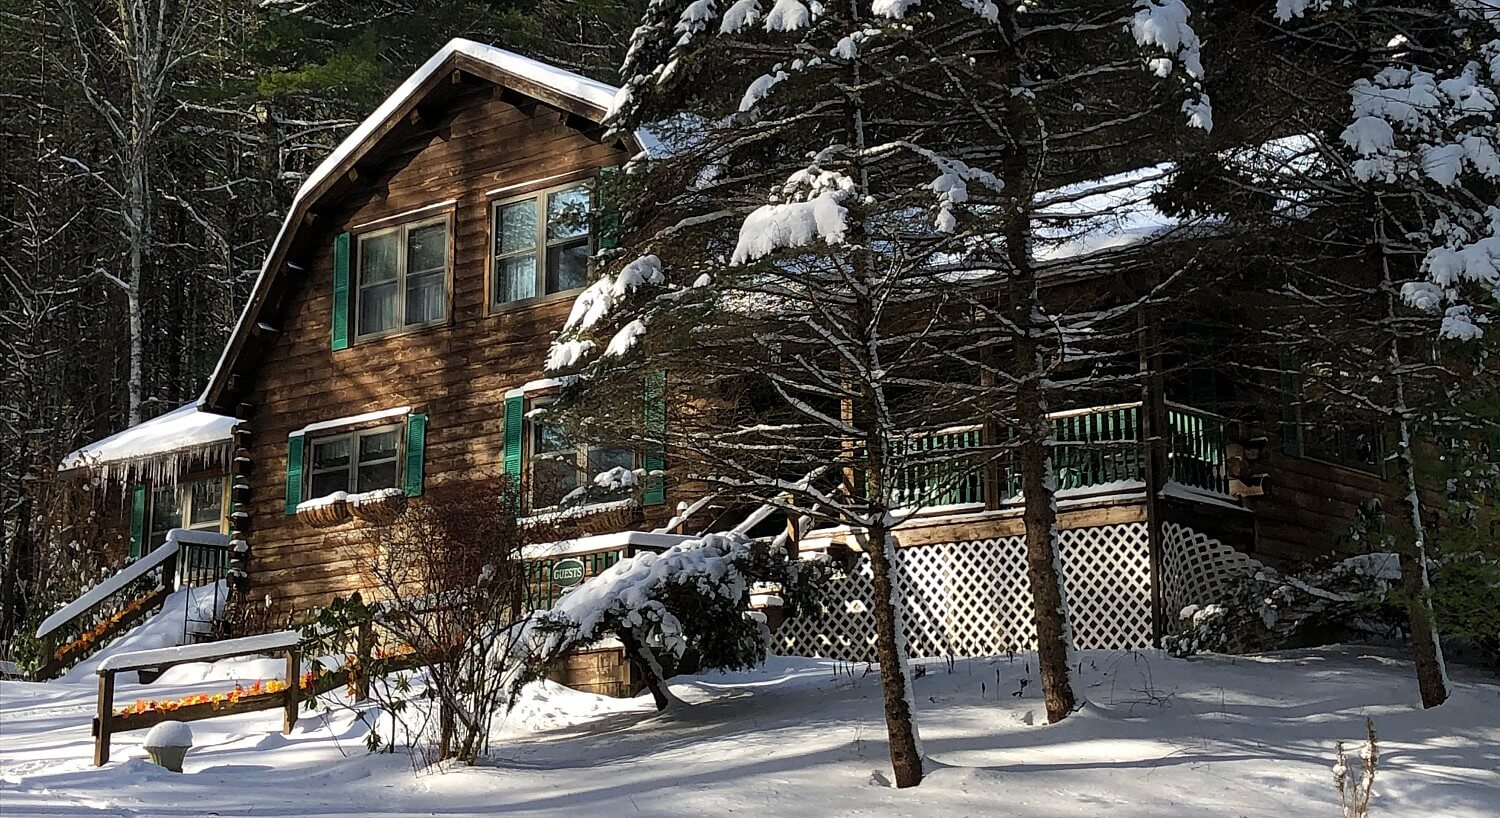 Front of a large log cabin home with many windows and front porch, nestled in the woods with freshly fallen snow